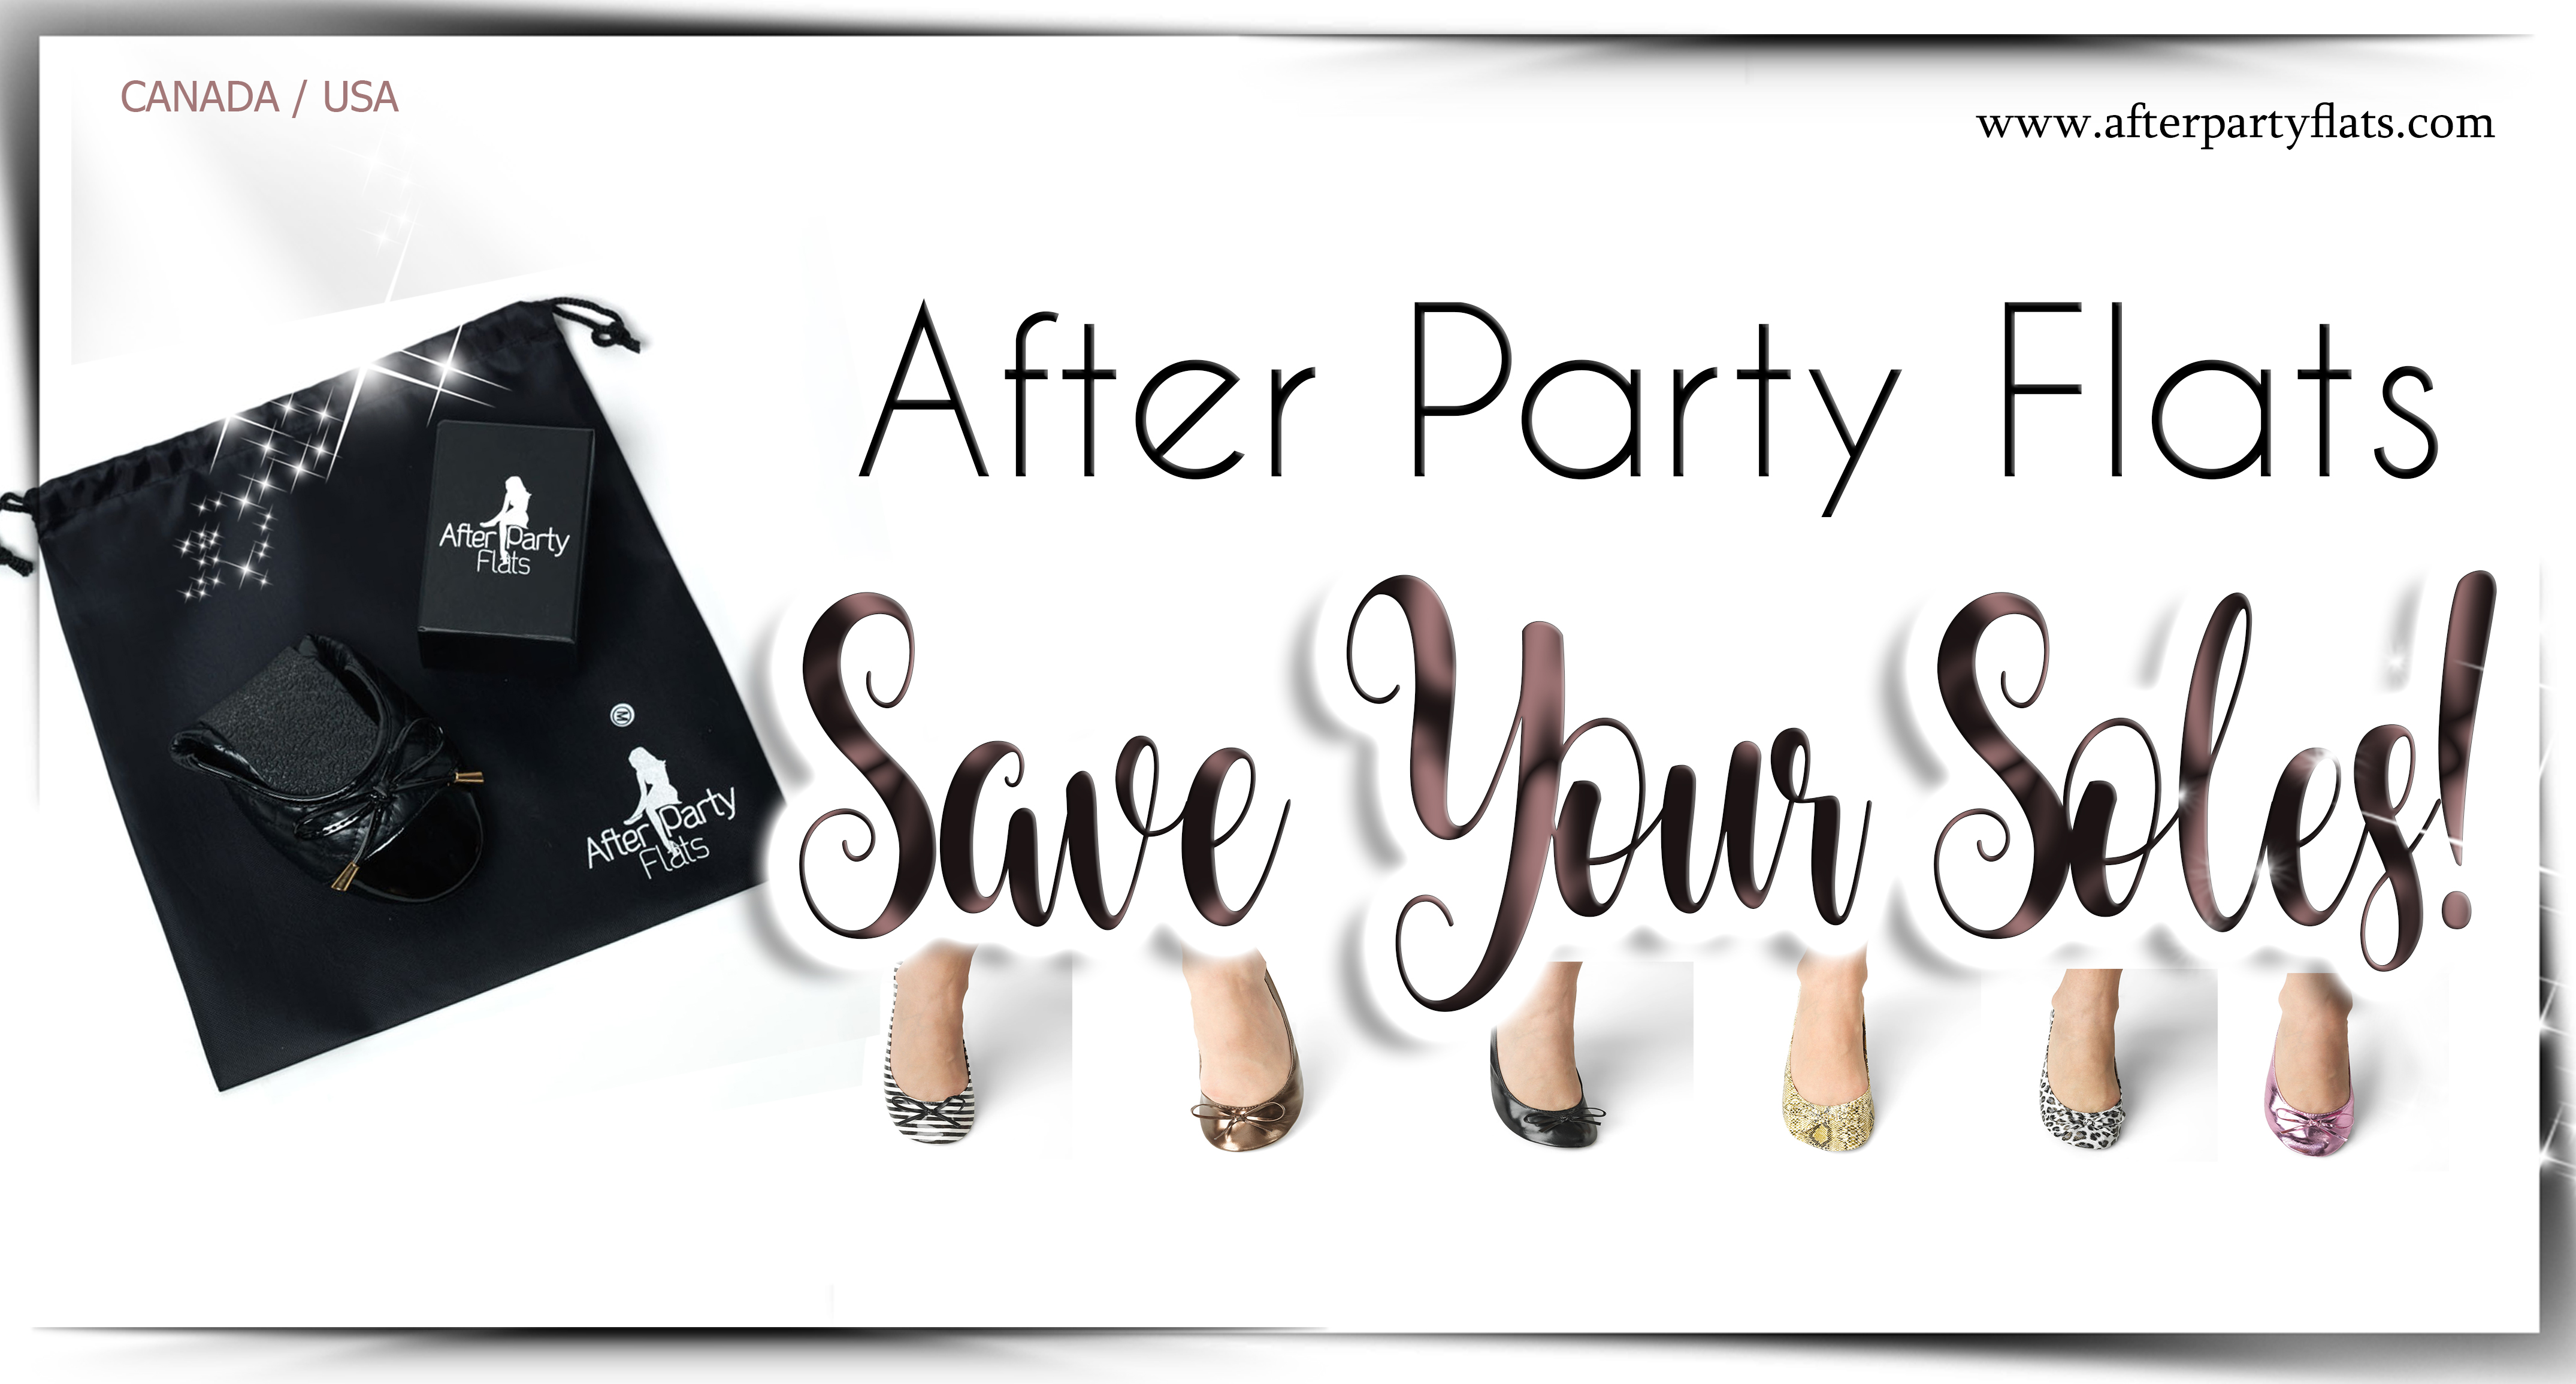 AFTER PARTY FLATS FB COVER PLAIN SHOES 8